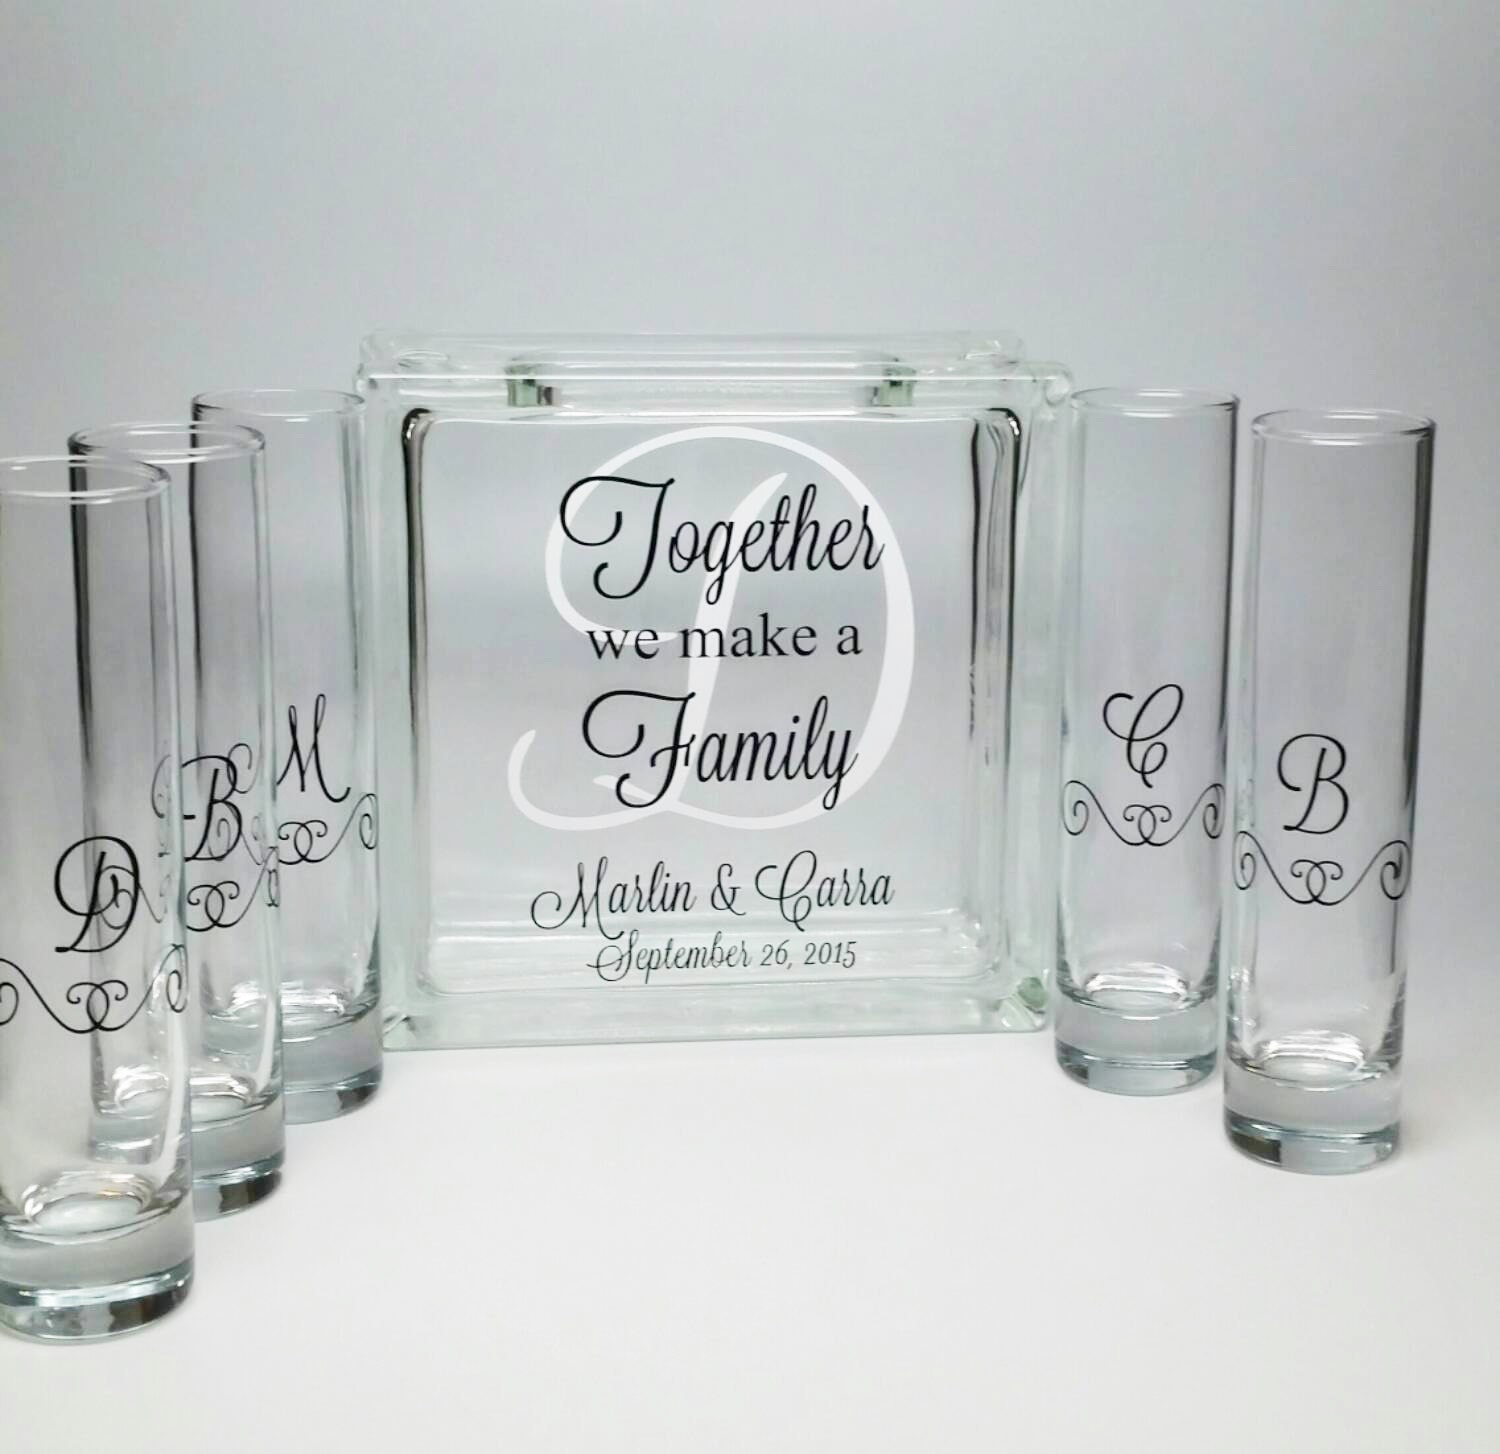 Family Picture Ideas For Wedding: Blended Family Sand Ceremony Set Unity Candle Alternative